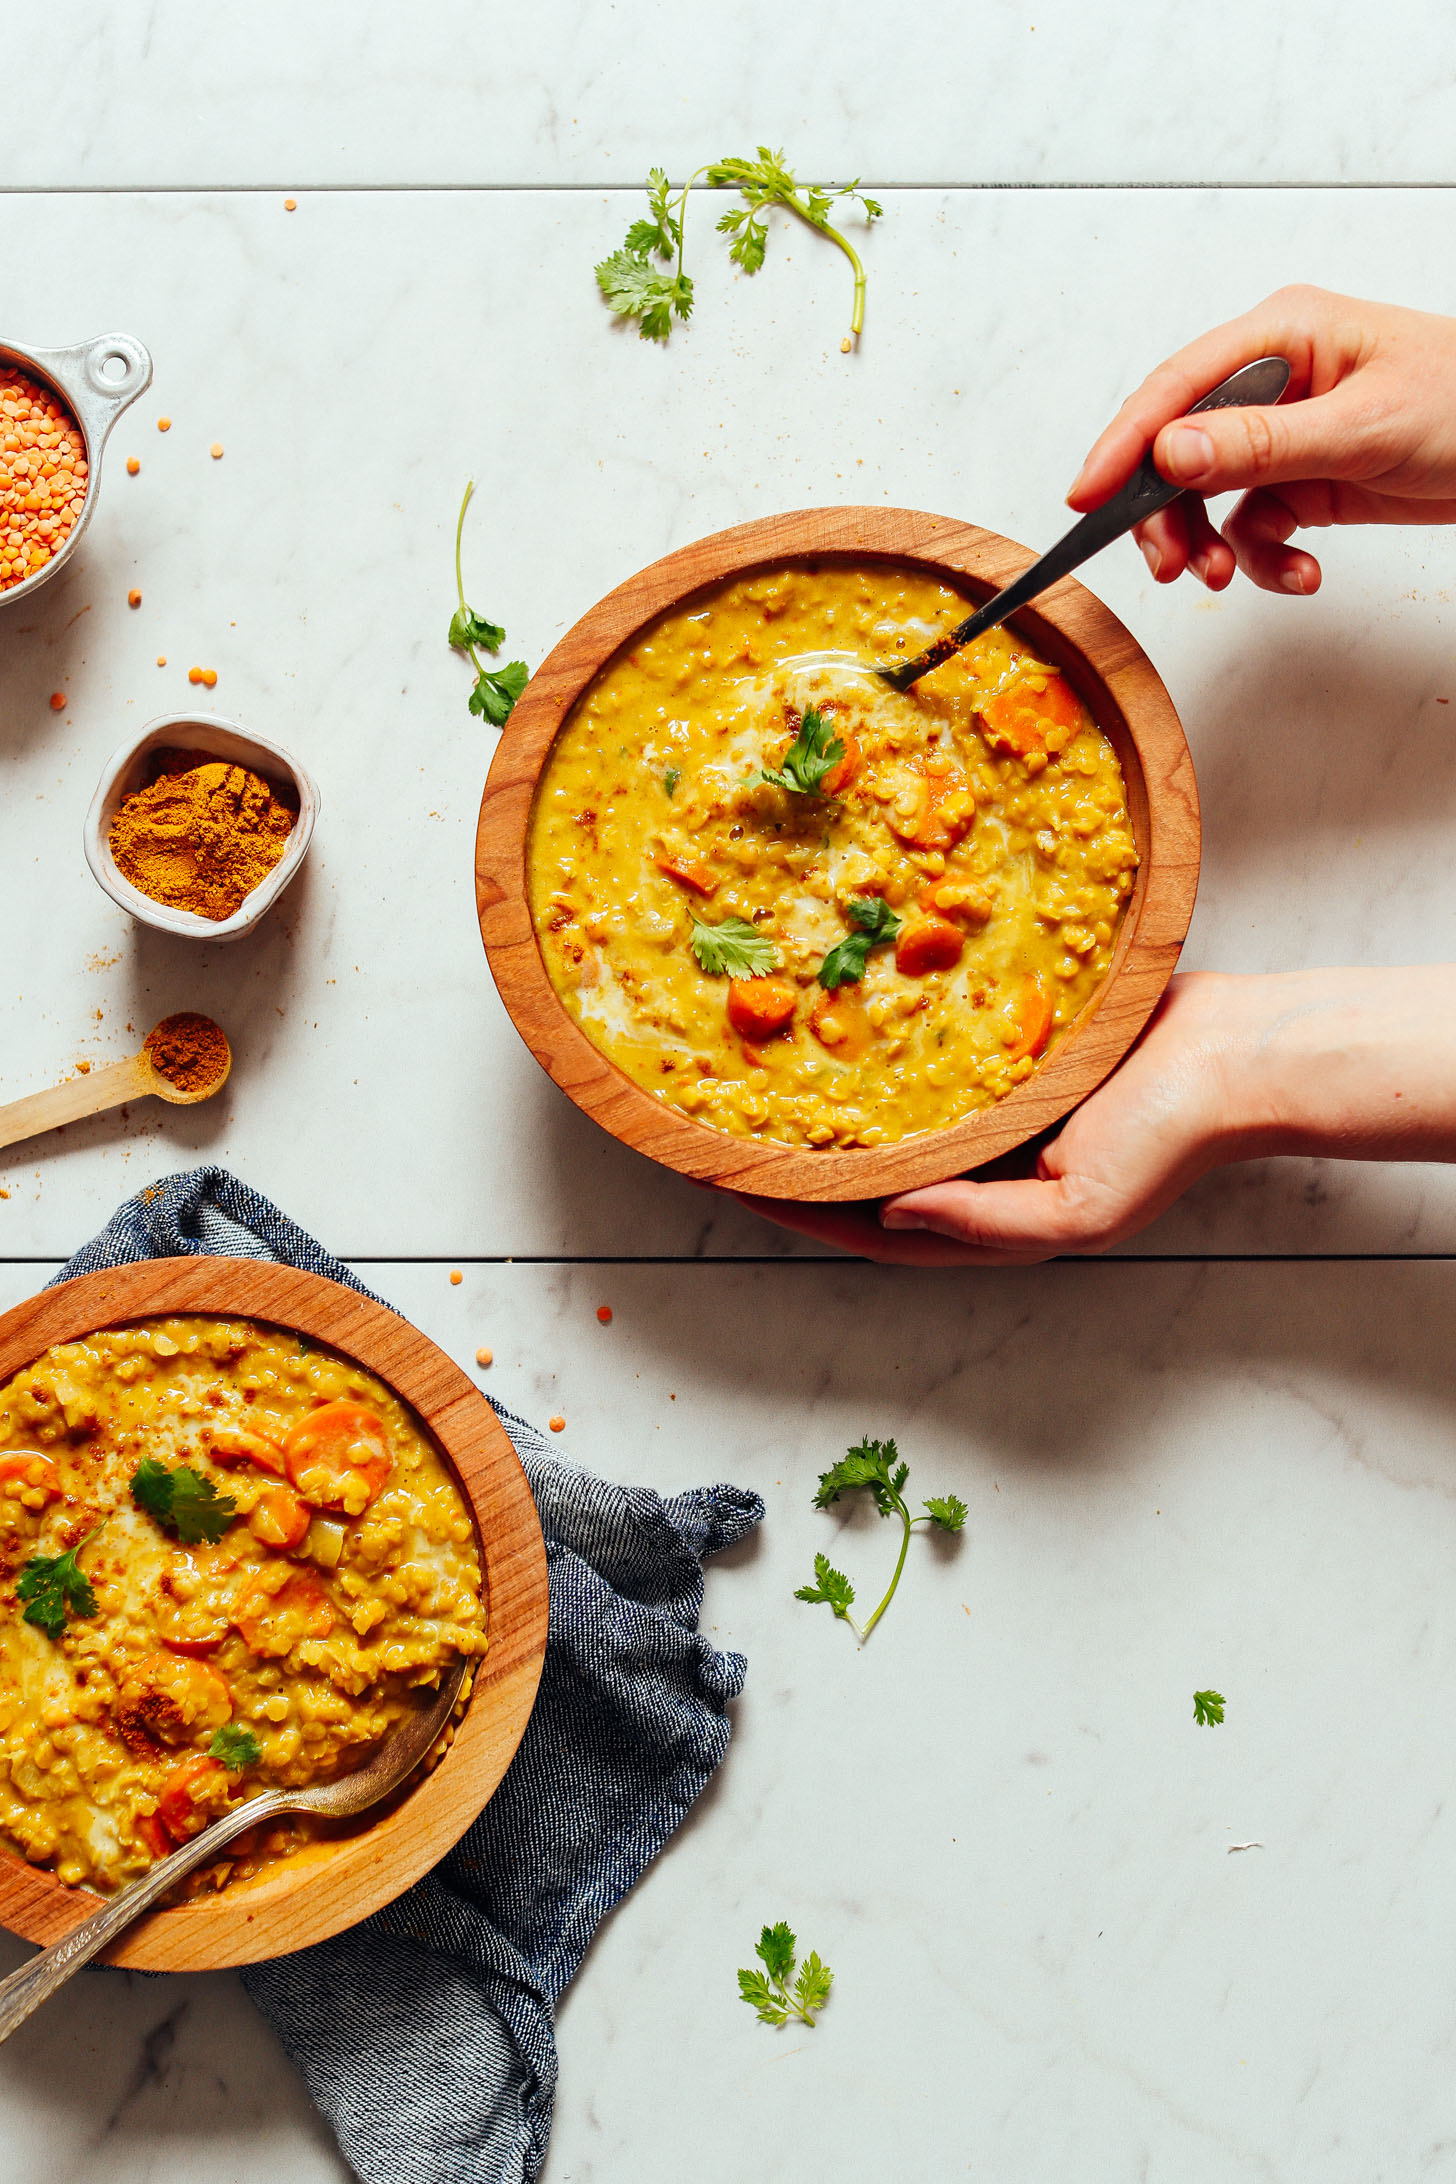 An overhead shot of two bowls of golden curried lentil soup with hands holding one bowl and taking a scoop